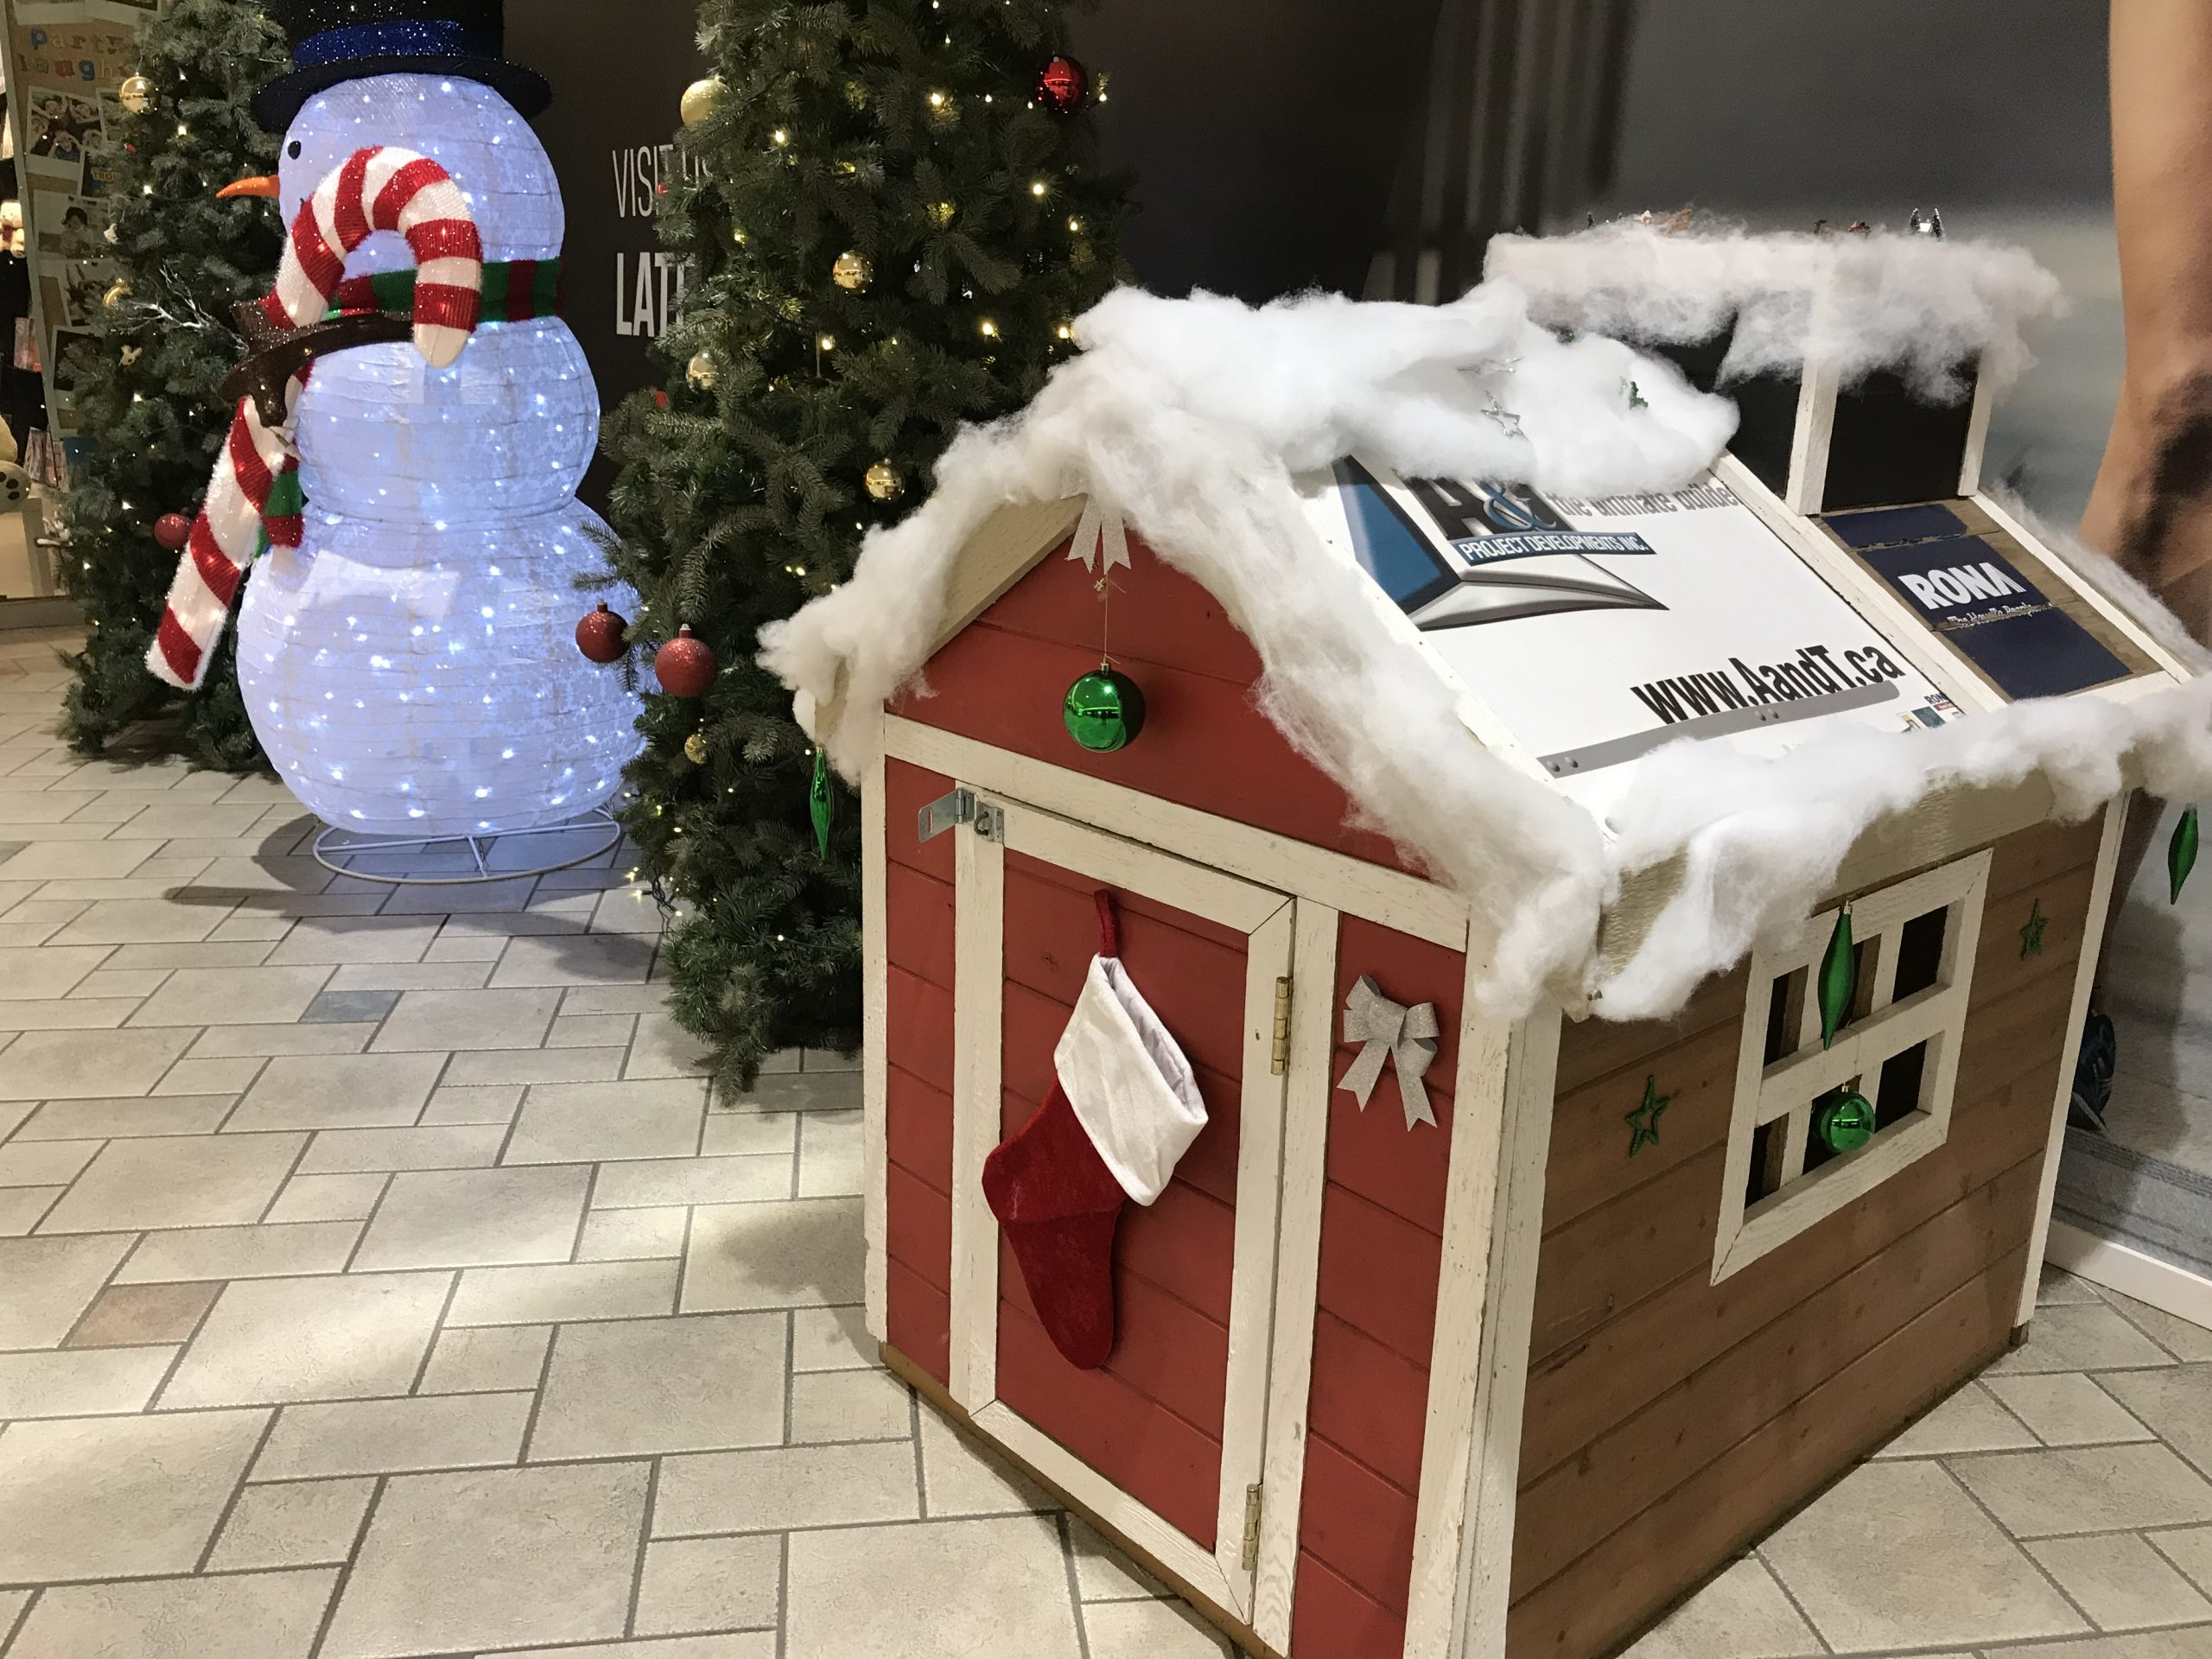 Toy House campaign to collect gifts for Christmas